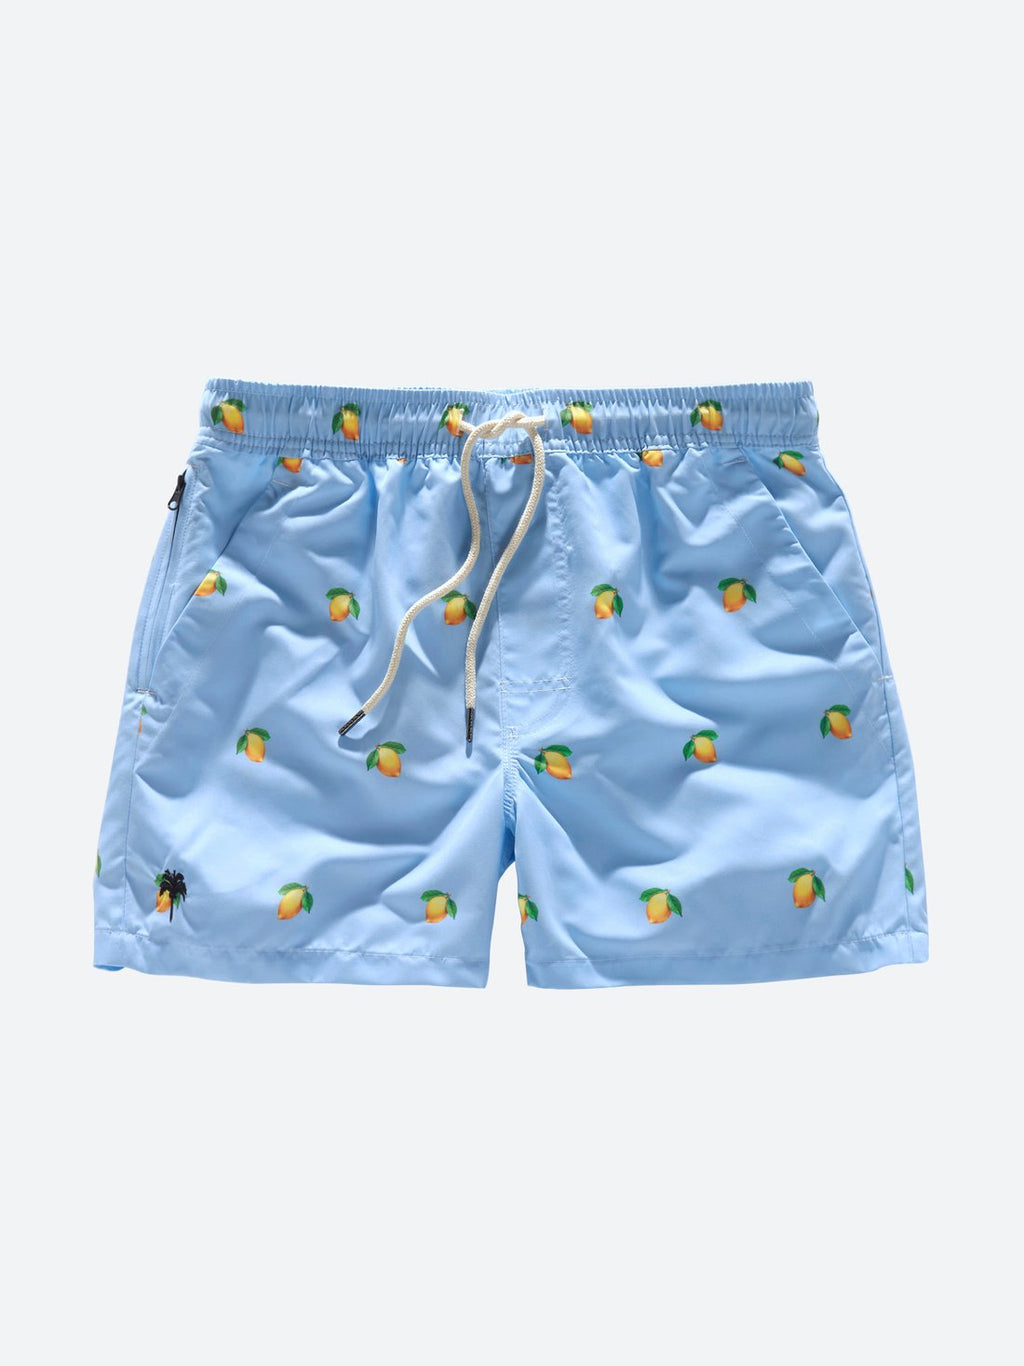 Blue Lemon Swim Shorts